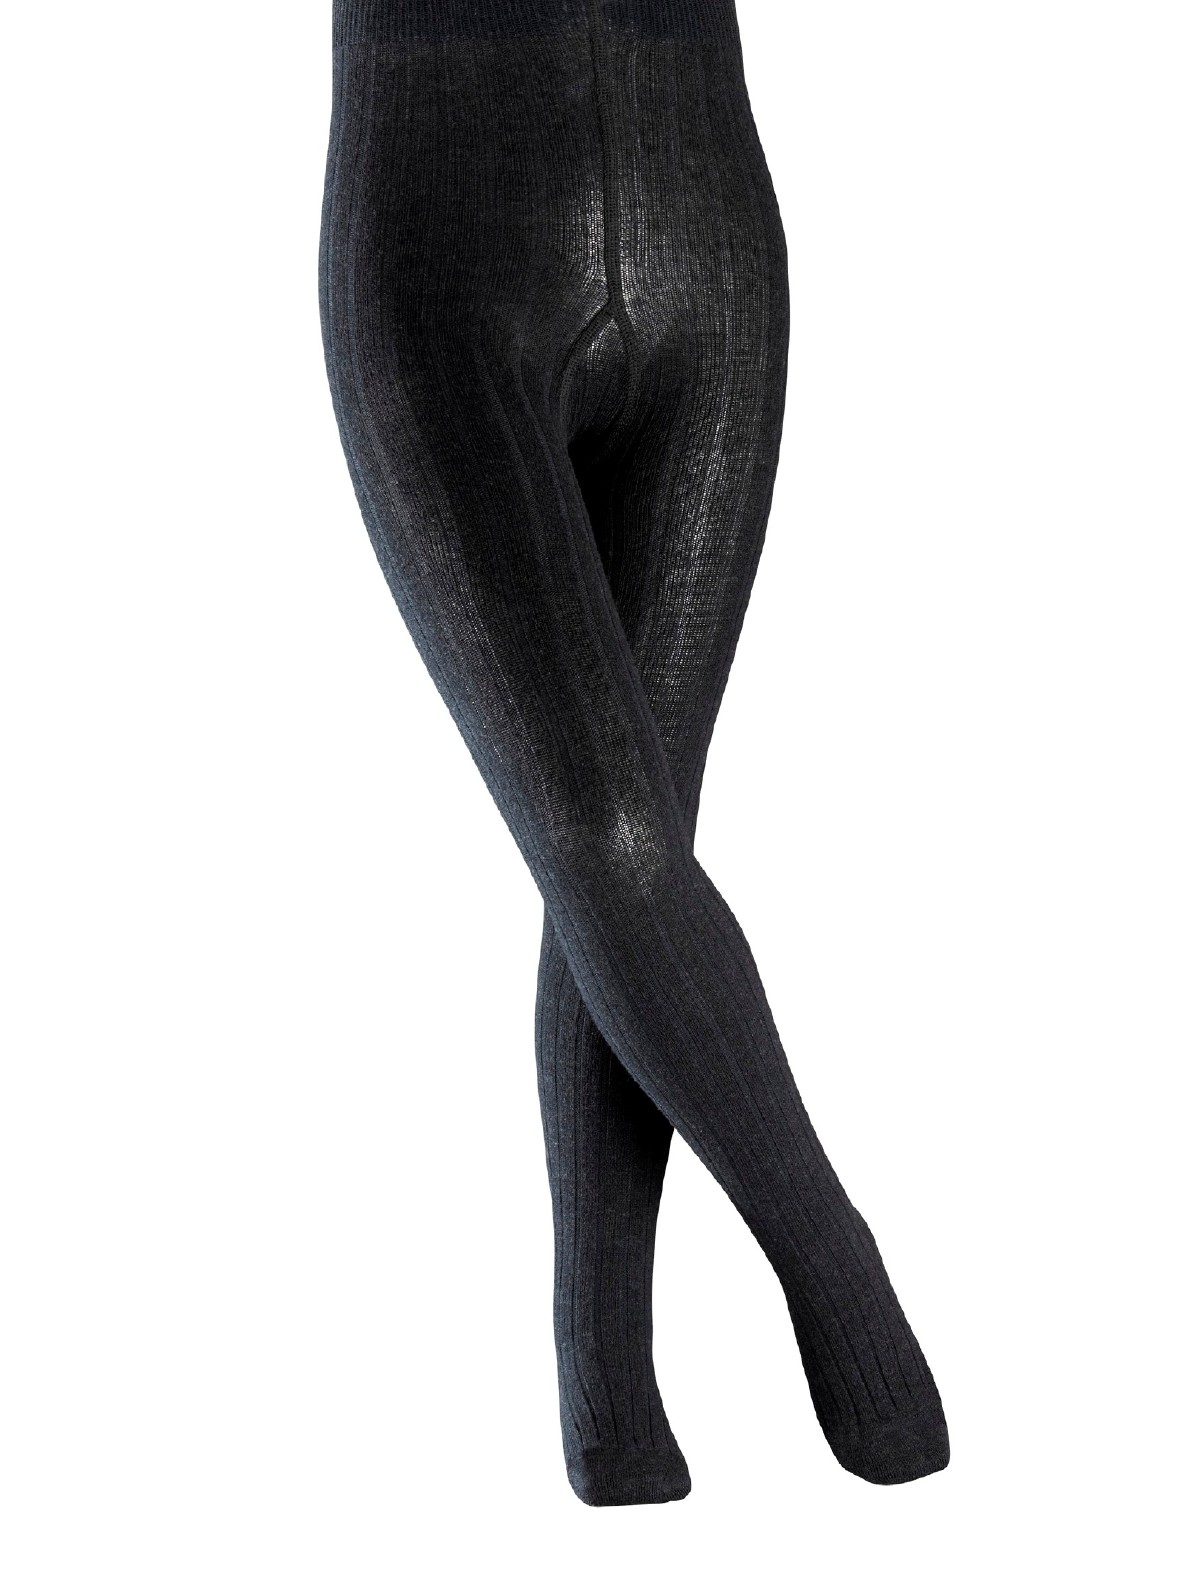 Unisex pantyhose tights